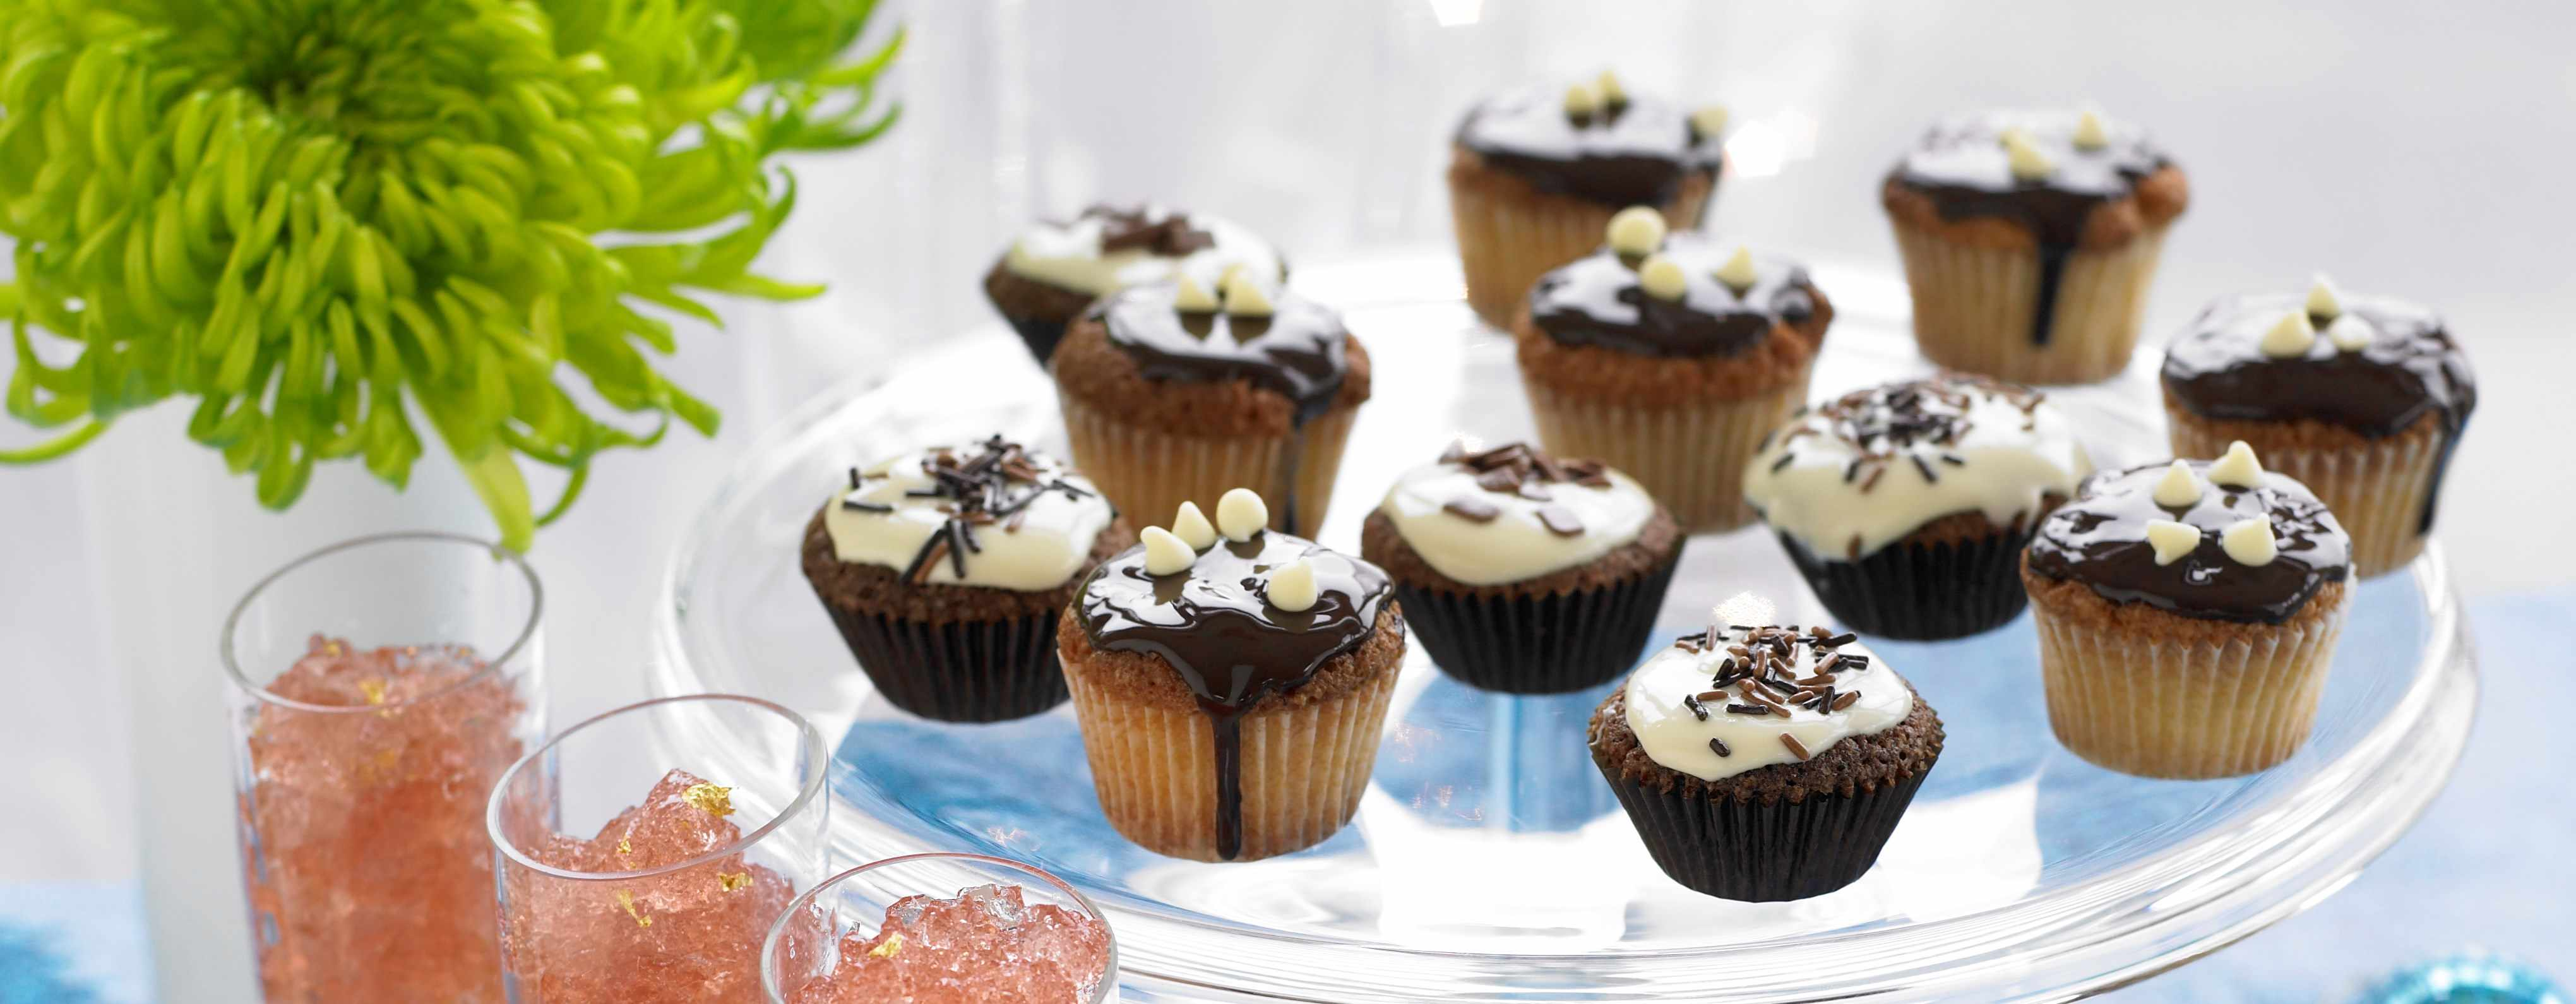 Chocolate and Vanilla Cupcakes Recipe